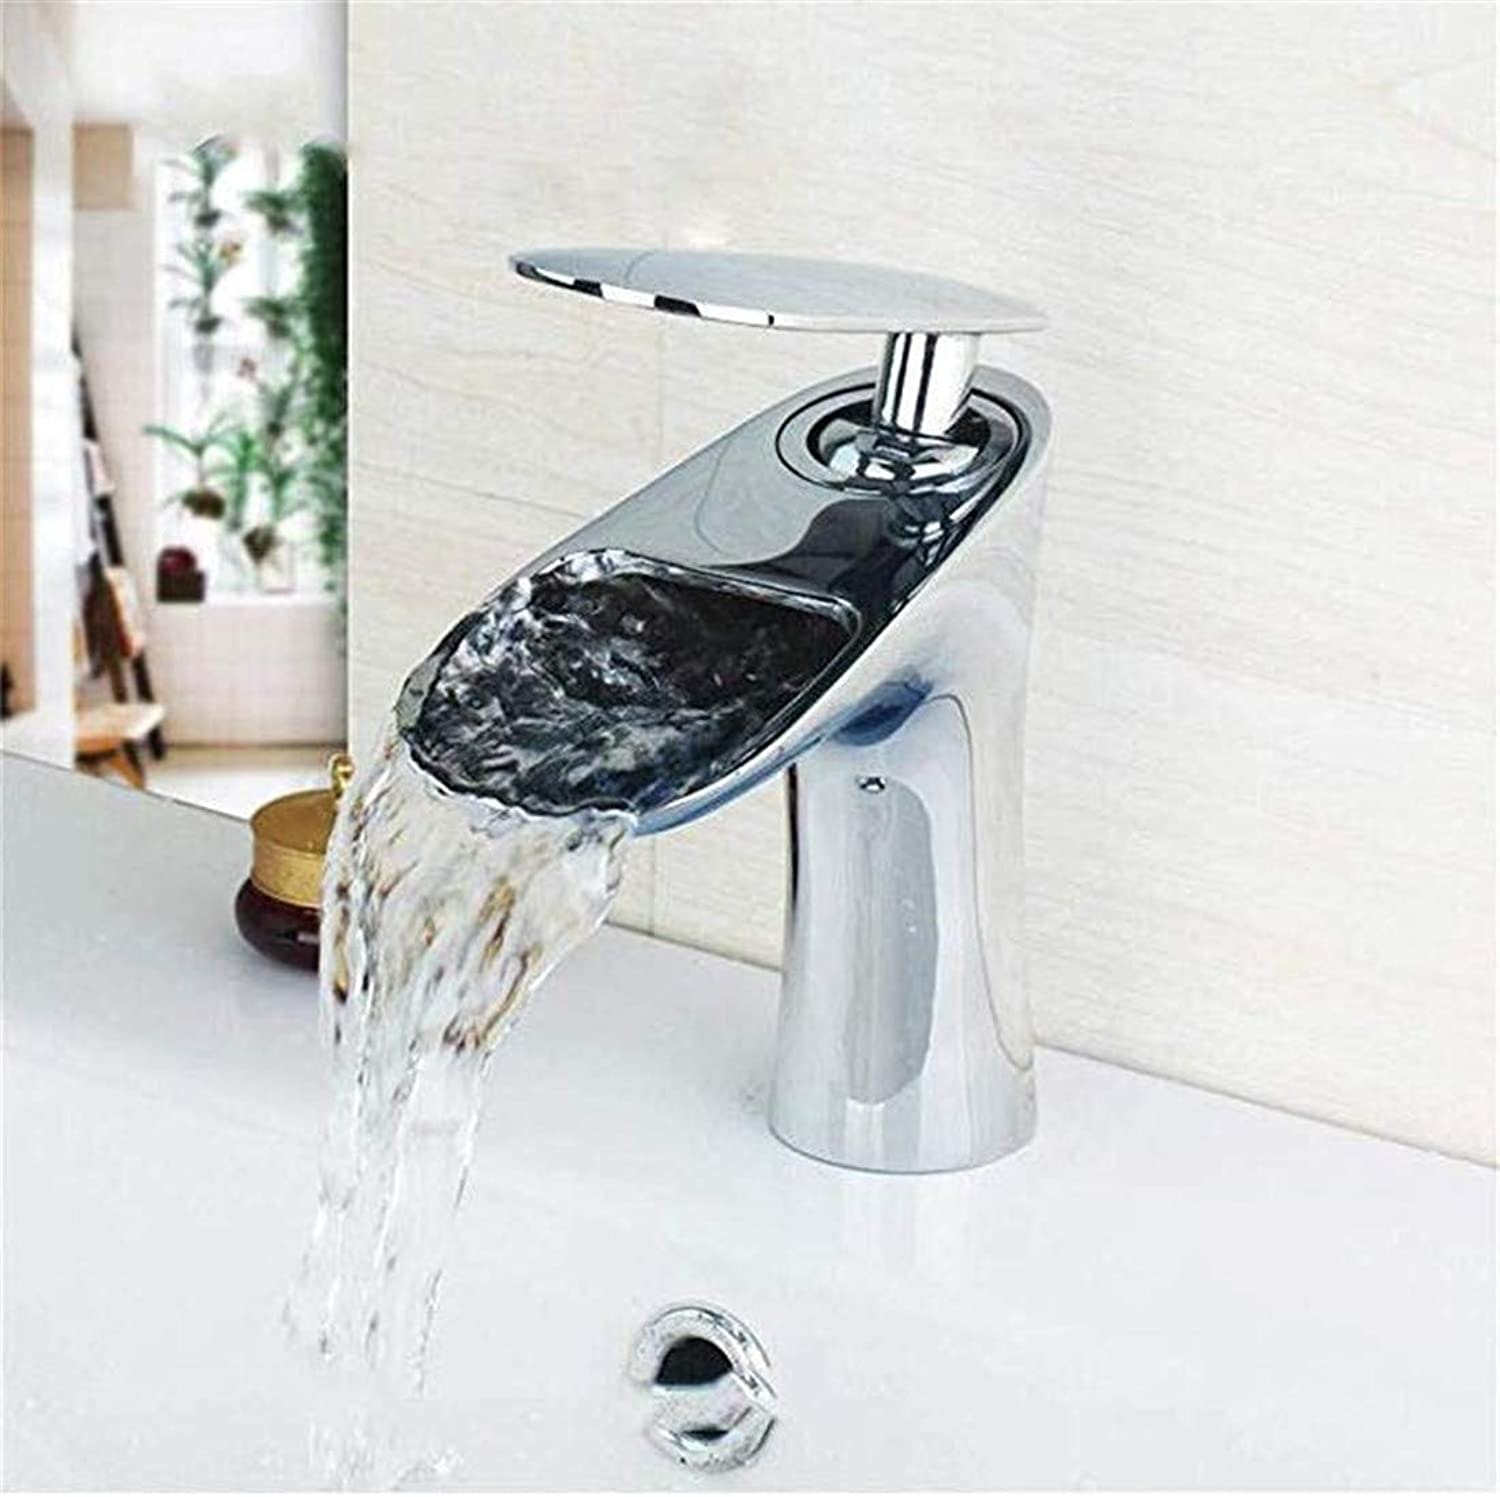 Luxury Modern Hot and Cold Faucet Vintage Platingfaucet Silver Deck Mounted Waterfall Bathroom Wash Basin Sink Faucets Mixers Taps